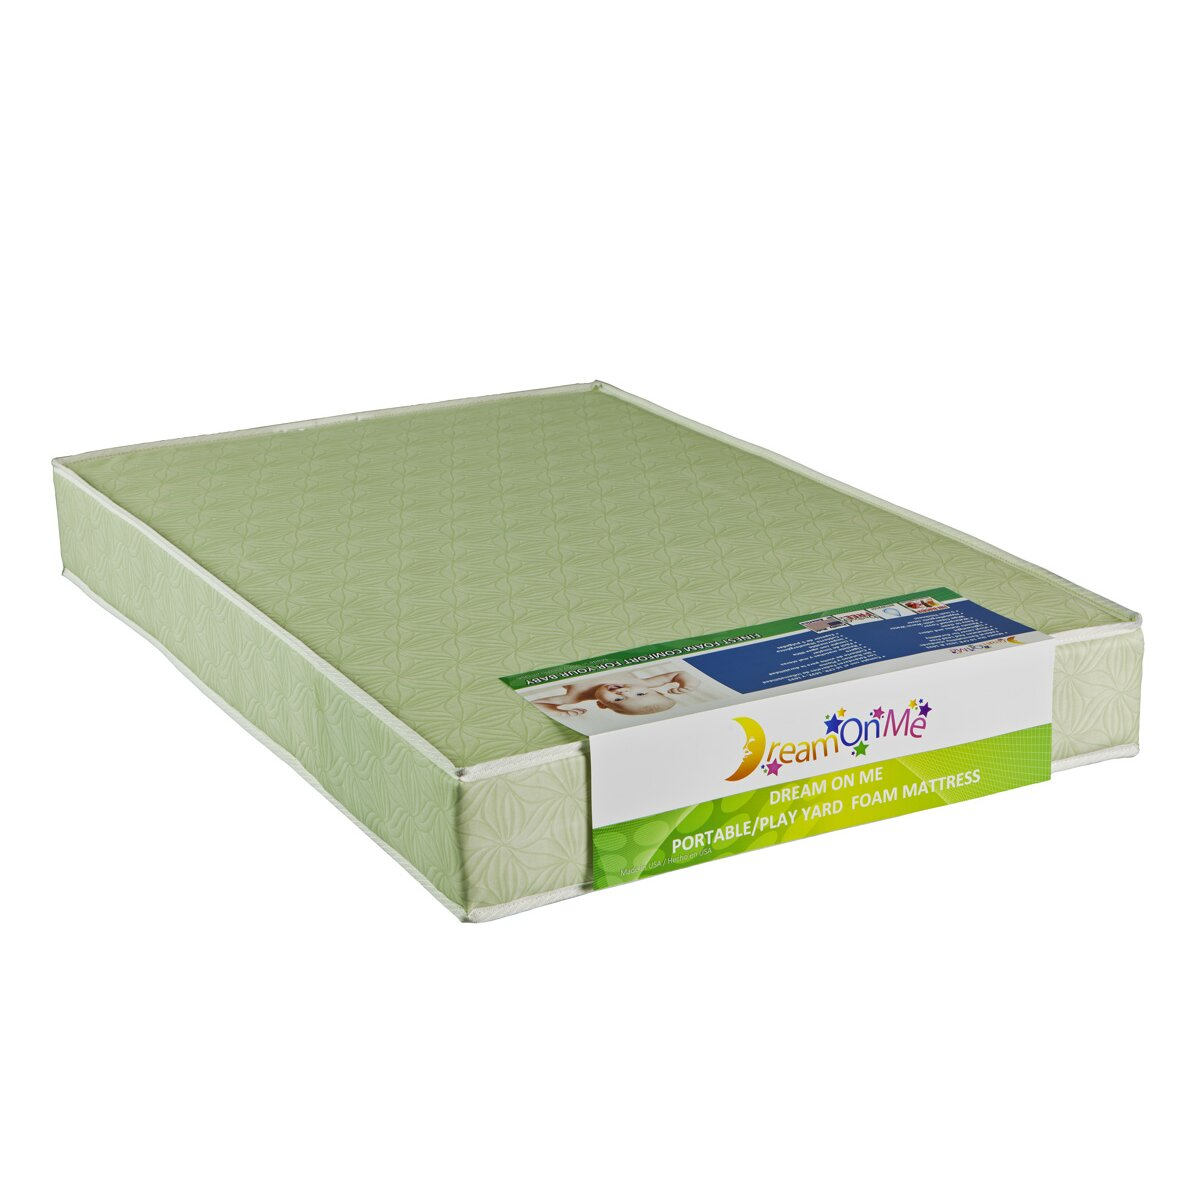 "Dream Me 5"" Two Sided Portable Crib Foam Mattress"